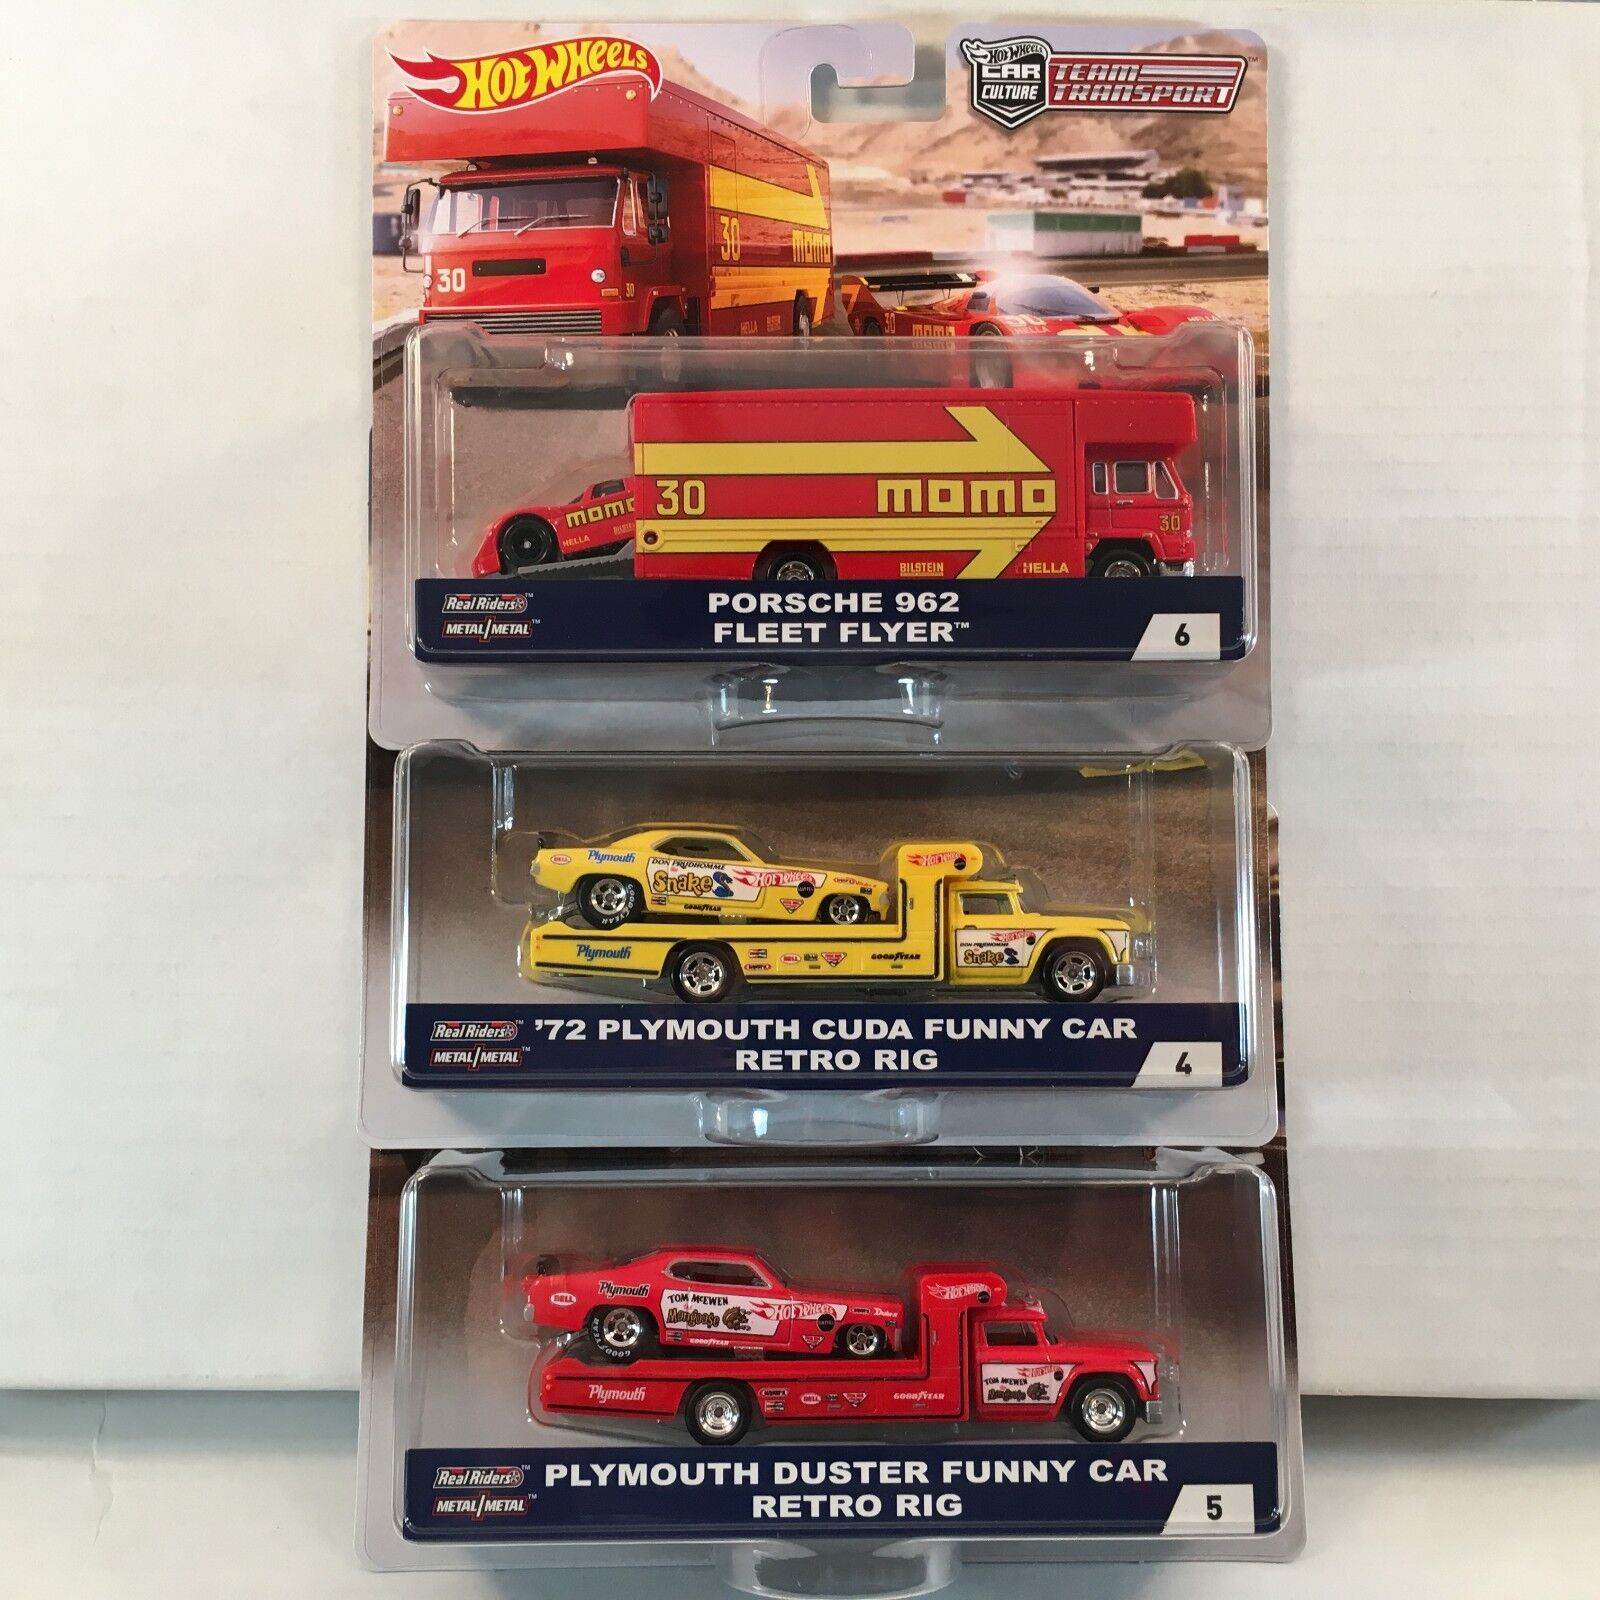 3 Car Set * Case B TEAM TRANSPORT * 2018 Hot Wheels Snake, Mongose & Porsche